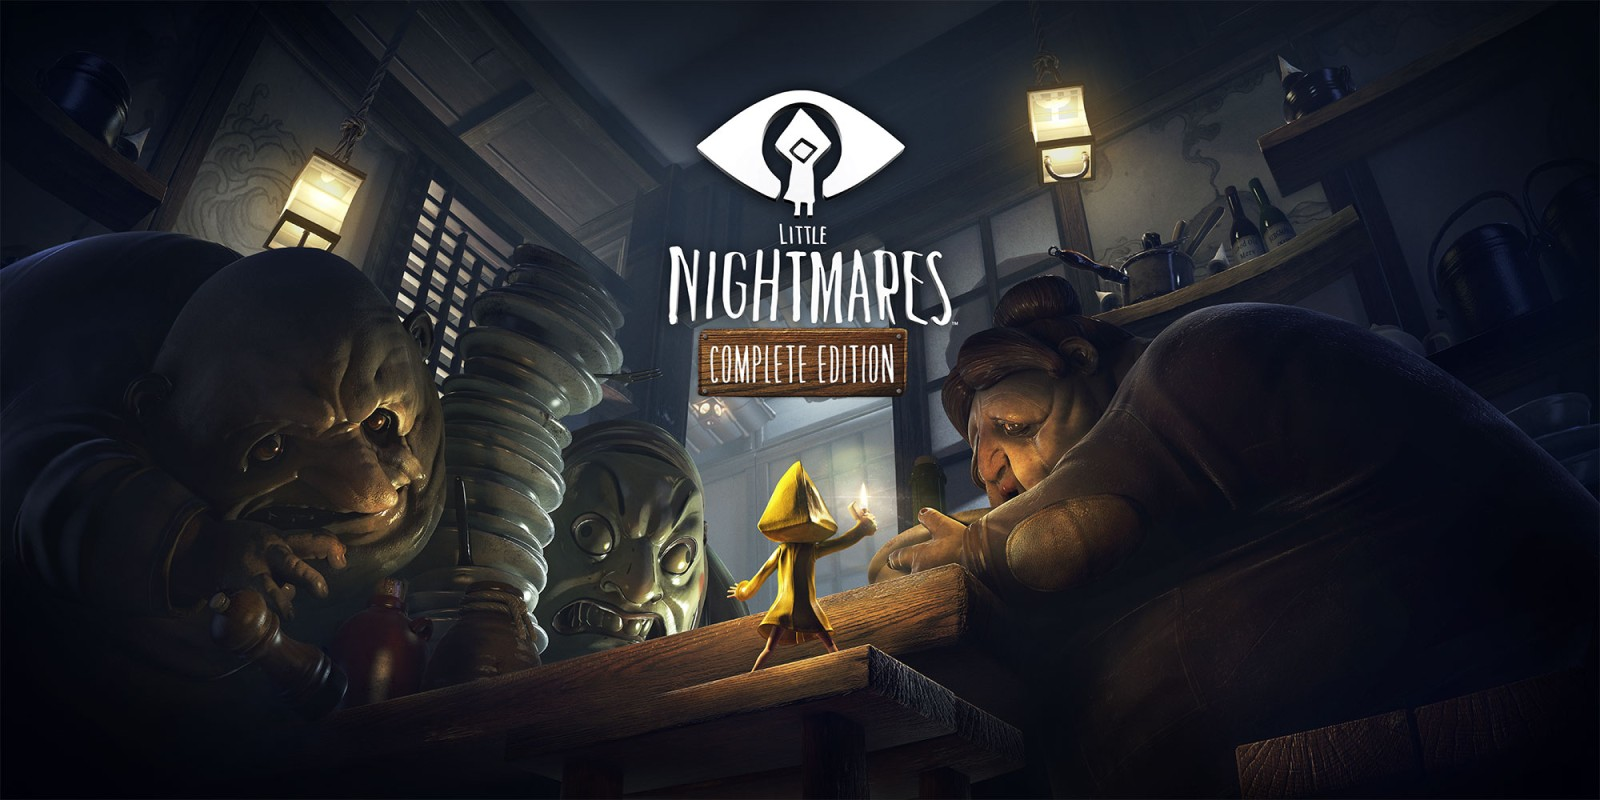 My Name 3d Wallpaper Download Little Nightmares Complete Edition Nintendo Switch